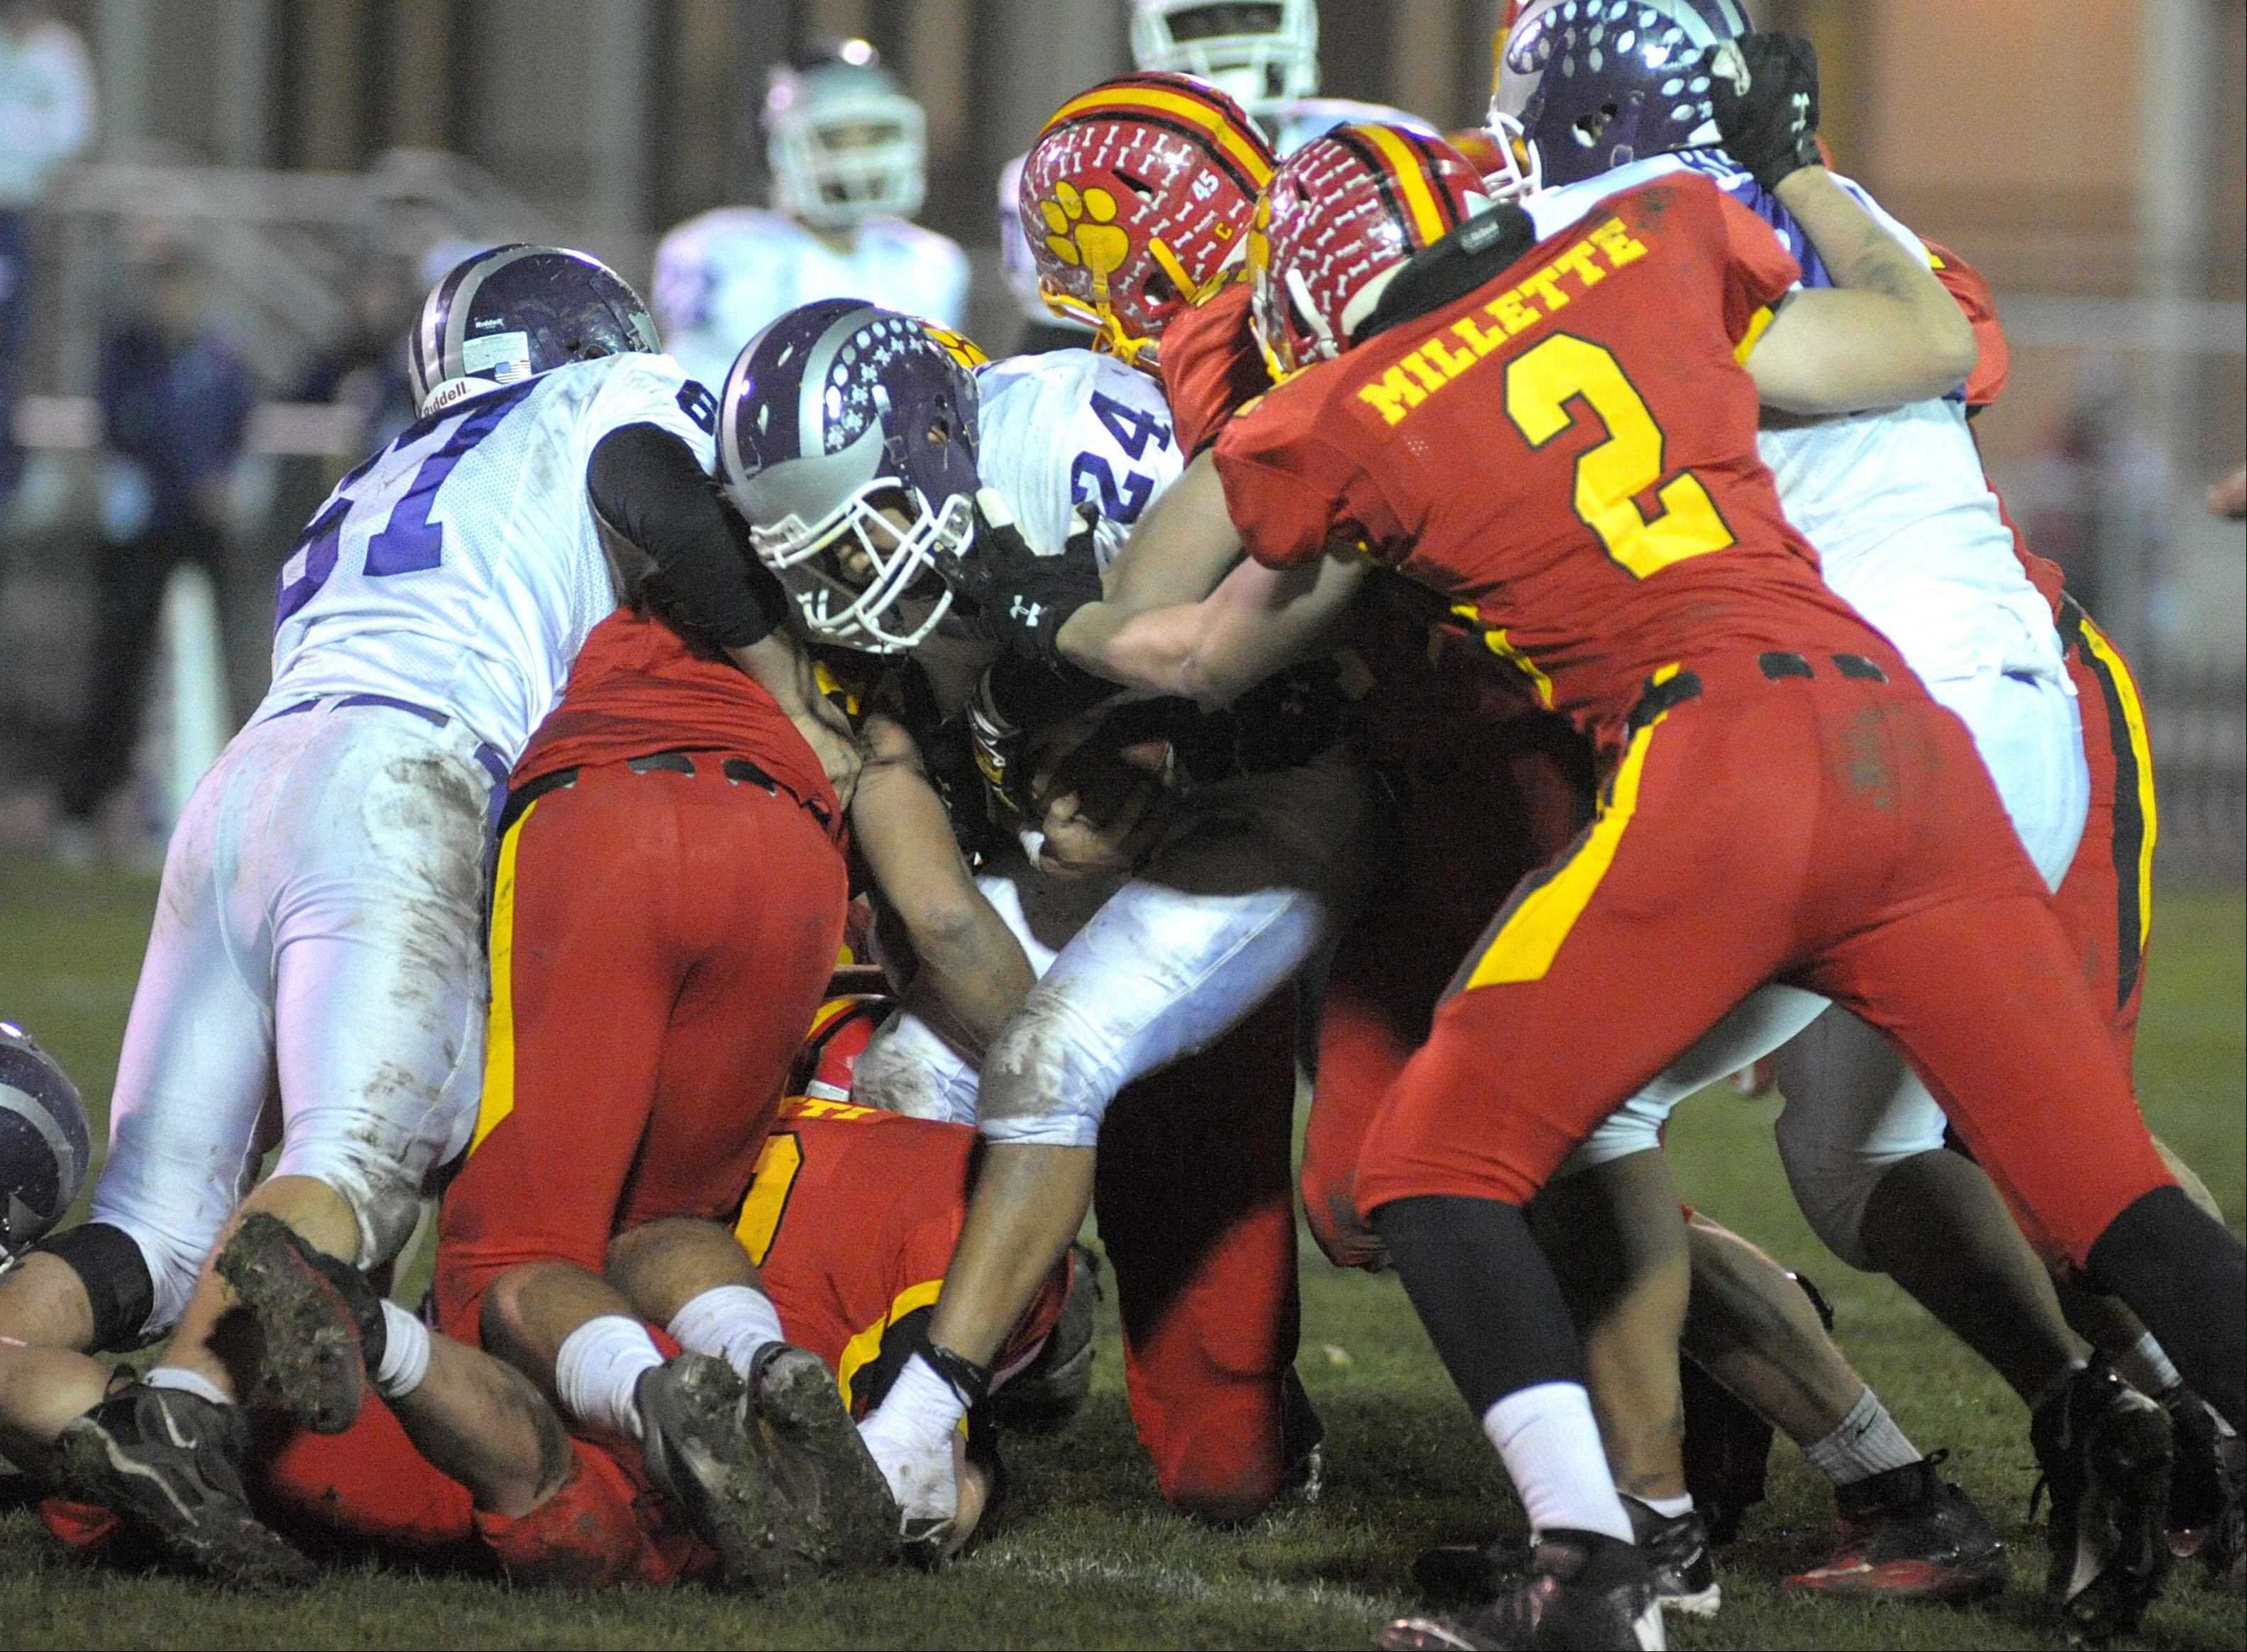 Downers Grove North's Brandon Salter is taken down by a pack of Bulldogs in the fourth quarter of playoff game on Friday, October 26.